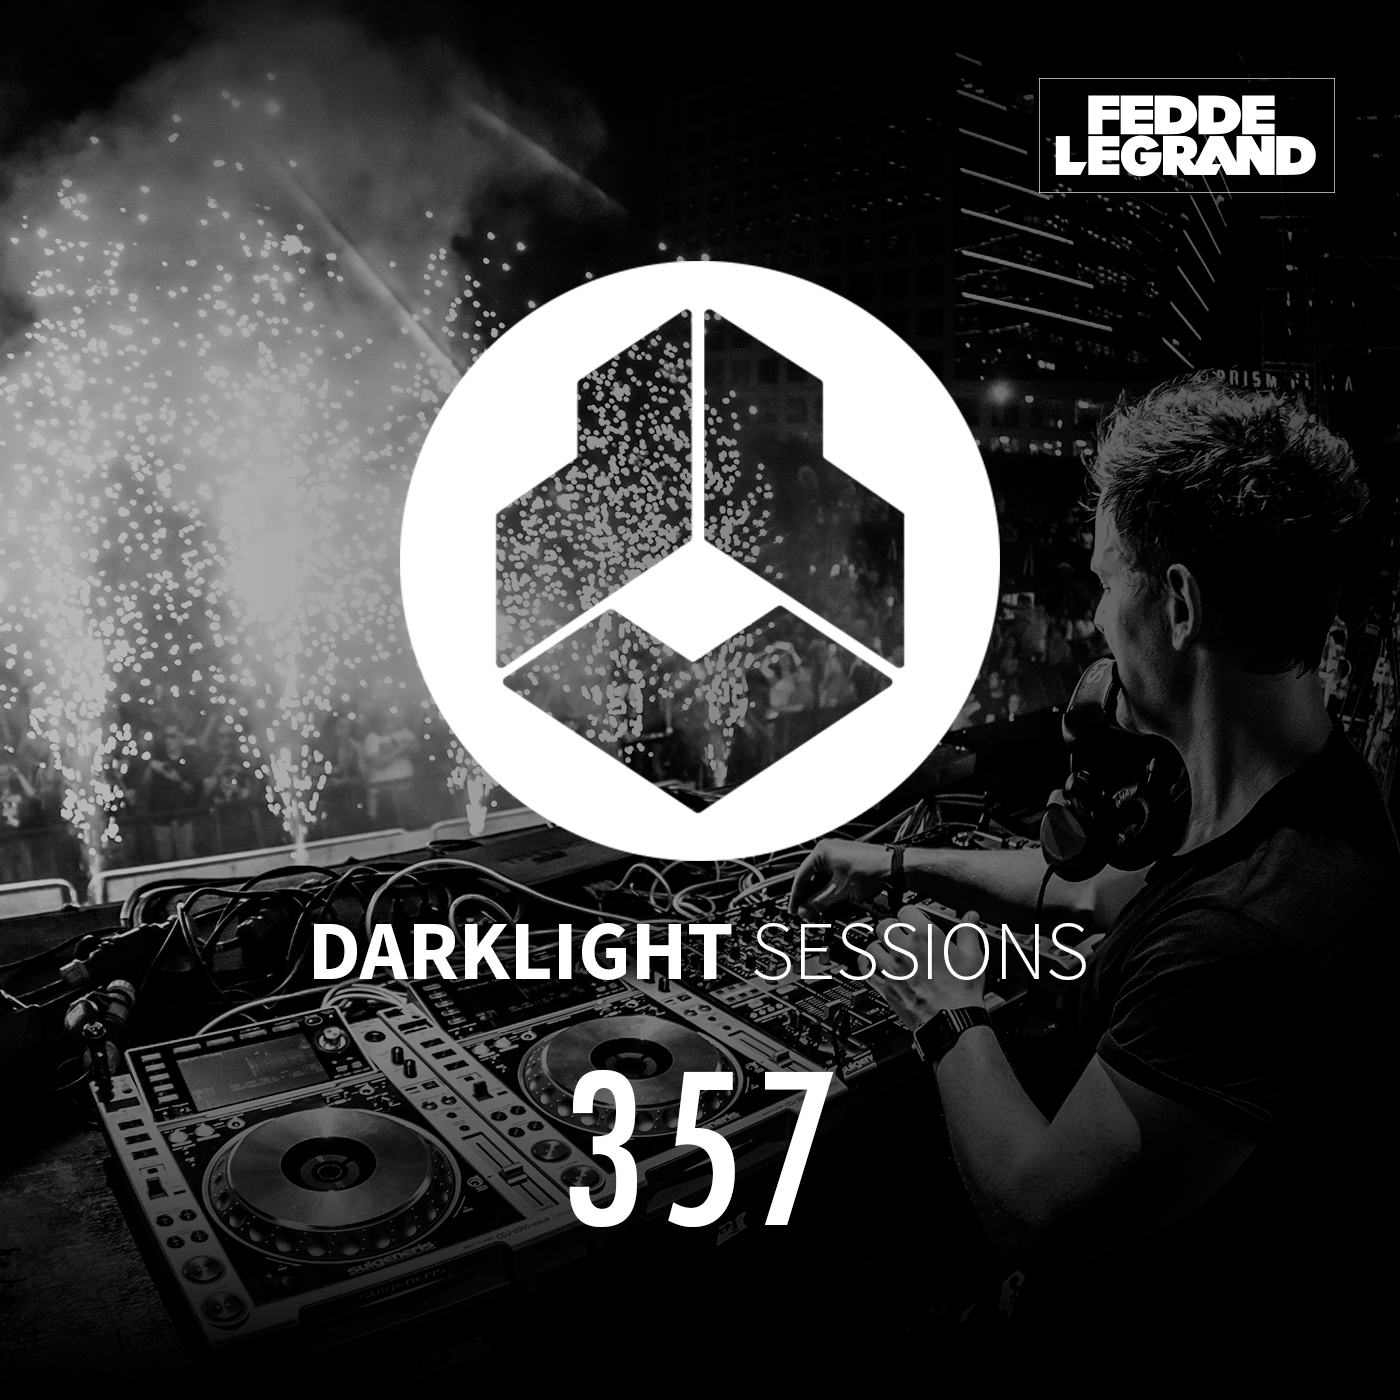 Darklight Sessions 357